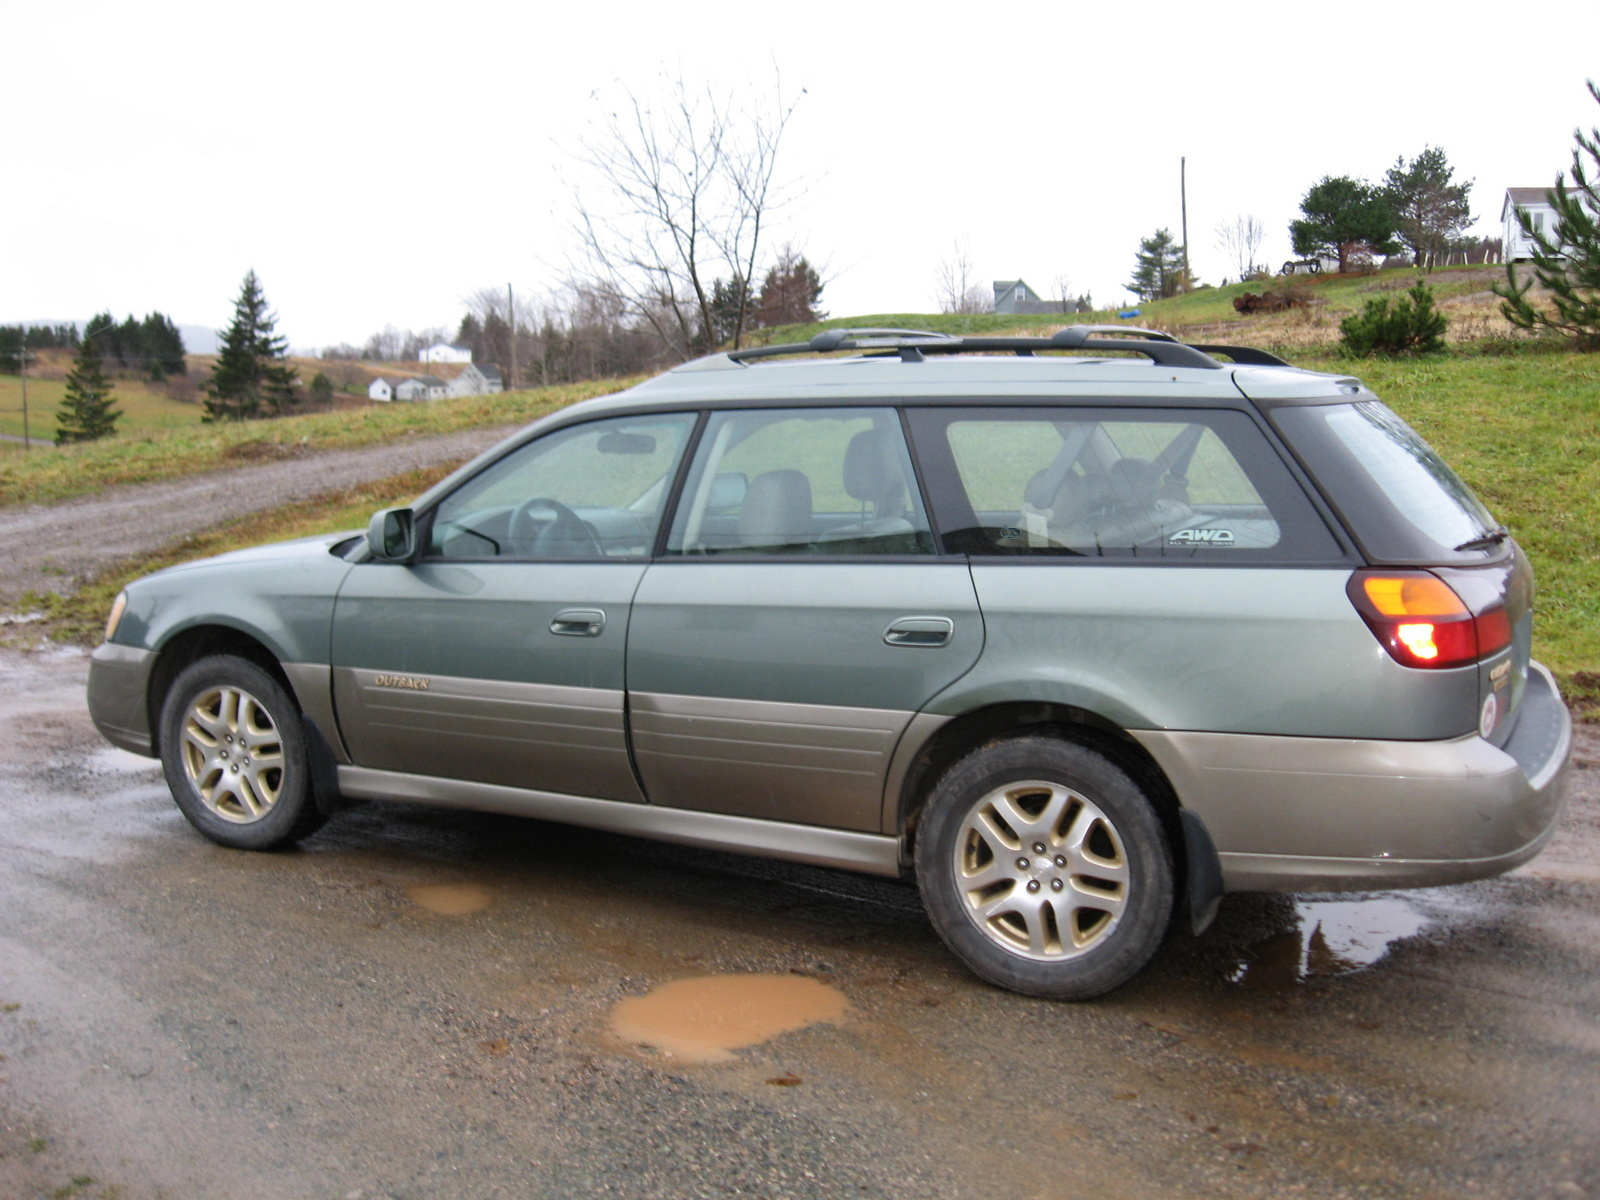 Subaru Outback Questions - I have a 2003 Subaru Outback,the park lights  will not shut off??? - CarGurus